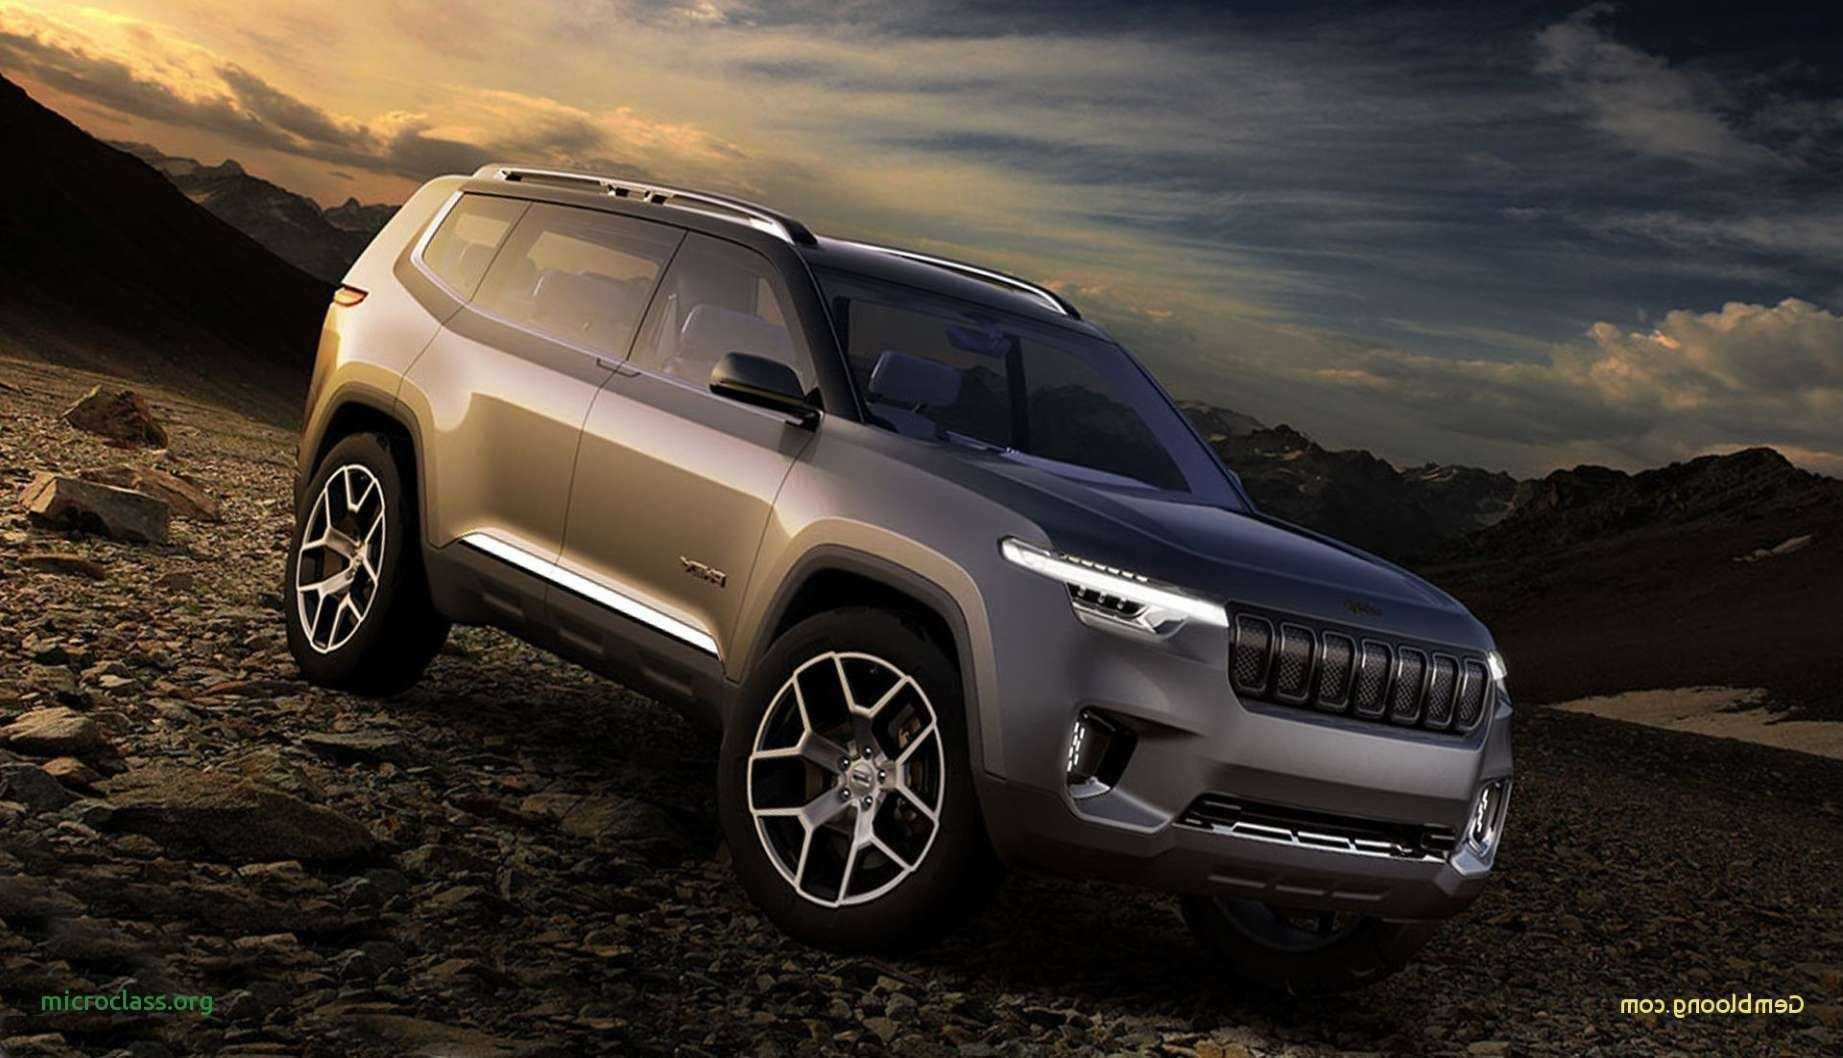 79 New 2020 Grand Cherokee Price And Release Date